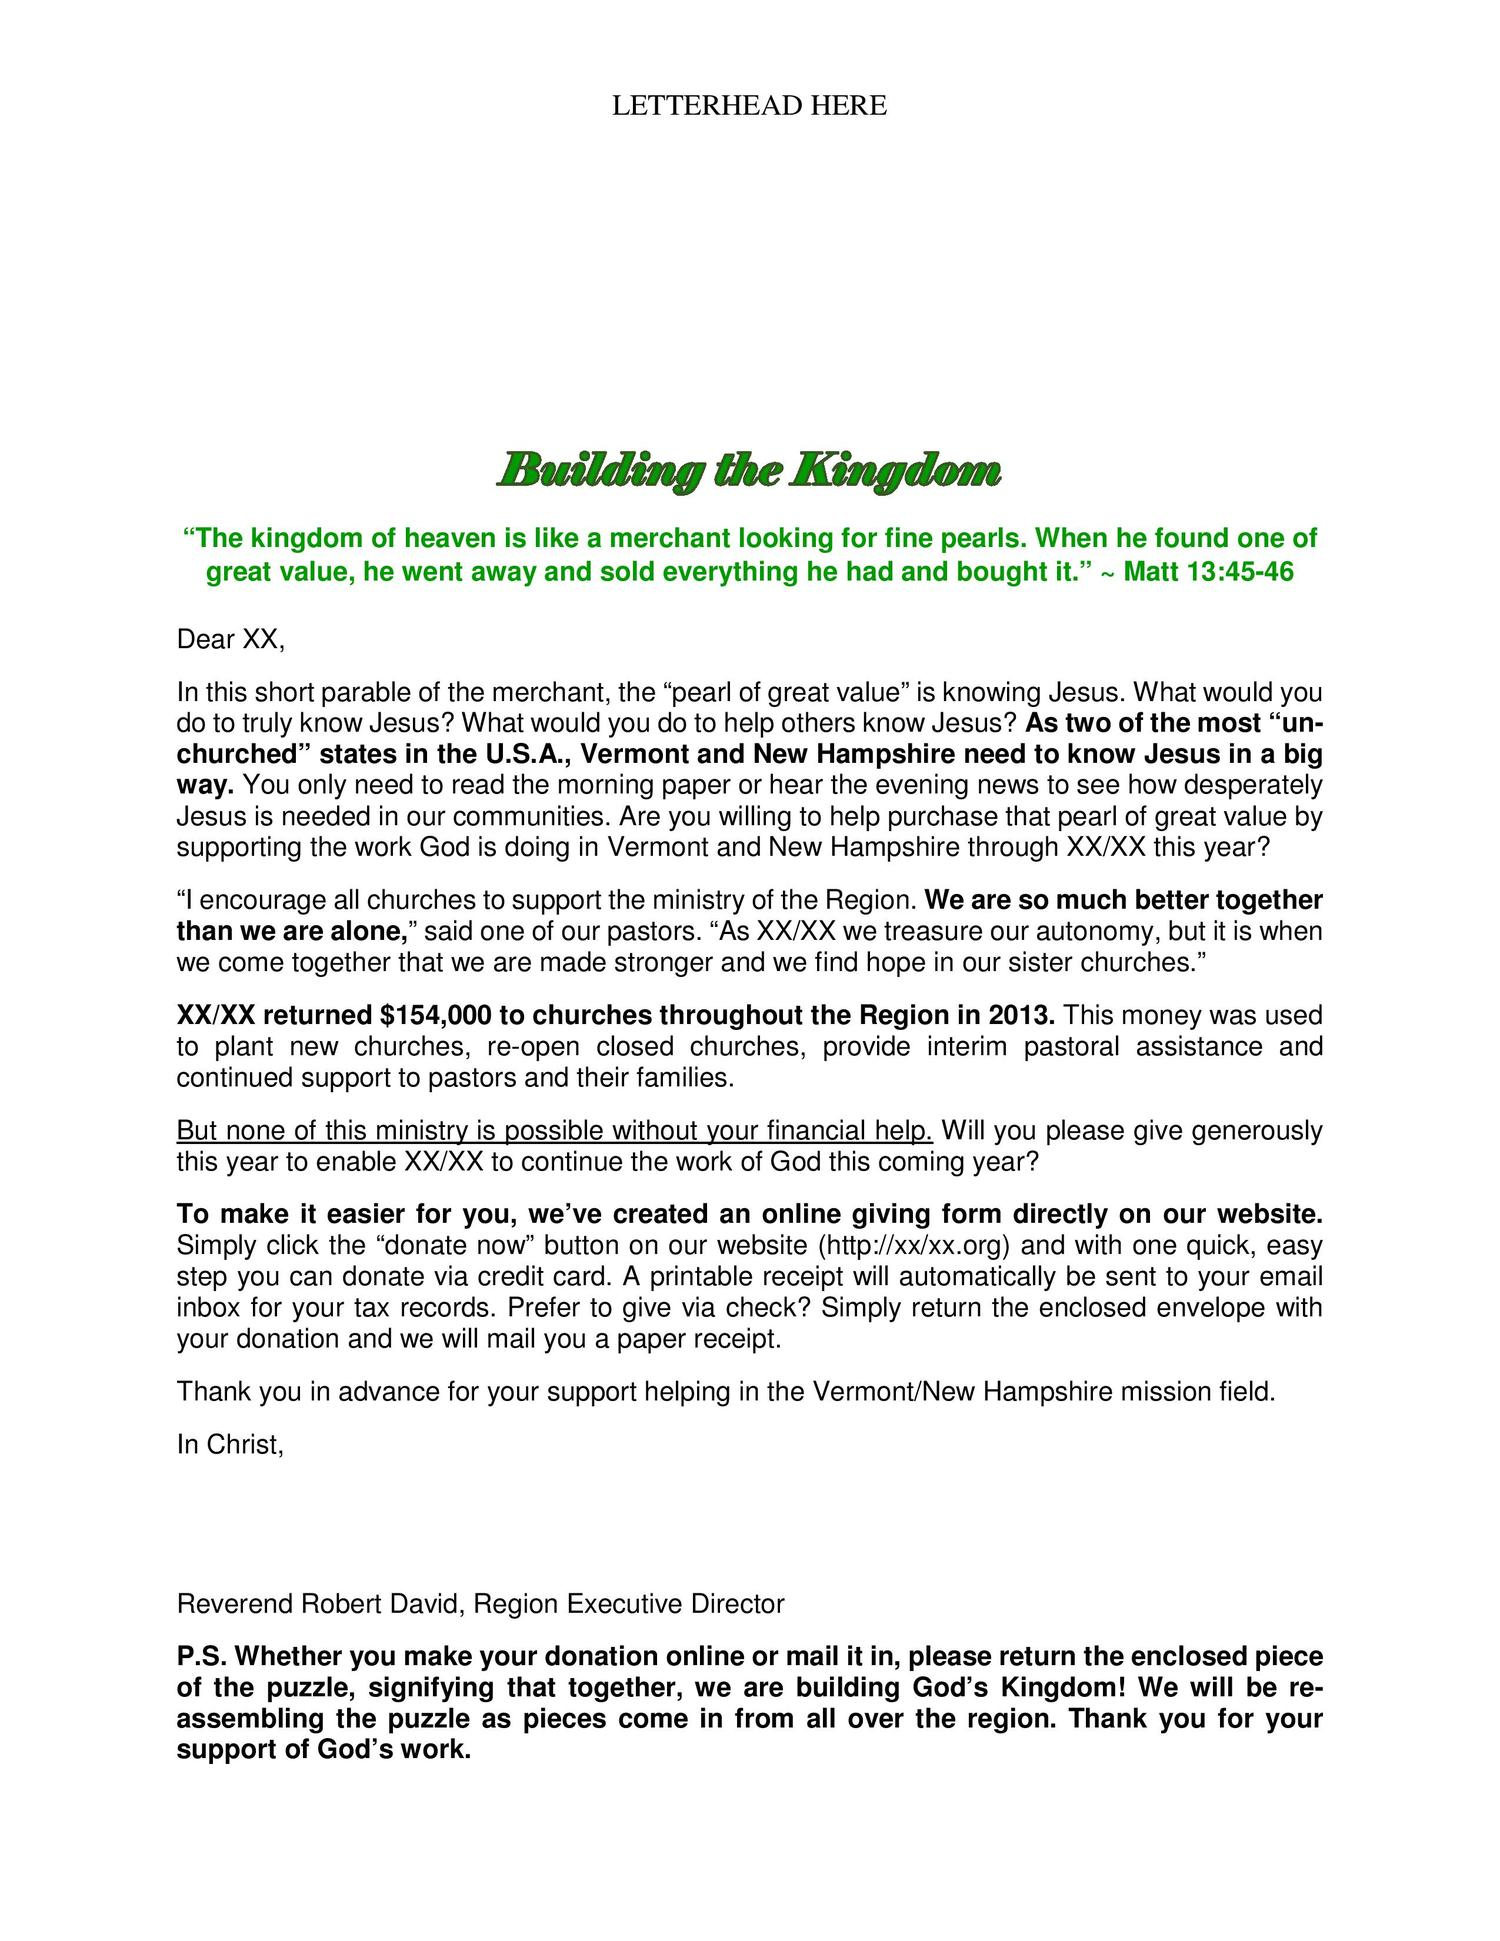 fundraising appeal letter template example-Fundraising Appeal Letters to Grab Attention and Get Results 15-r